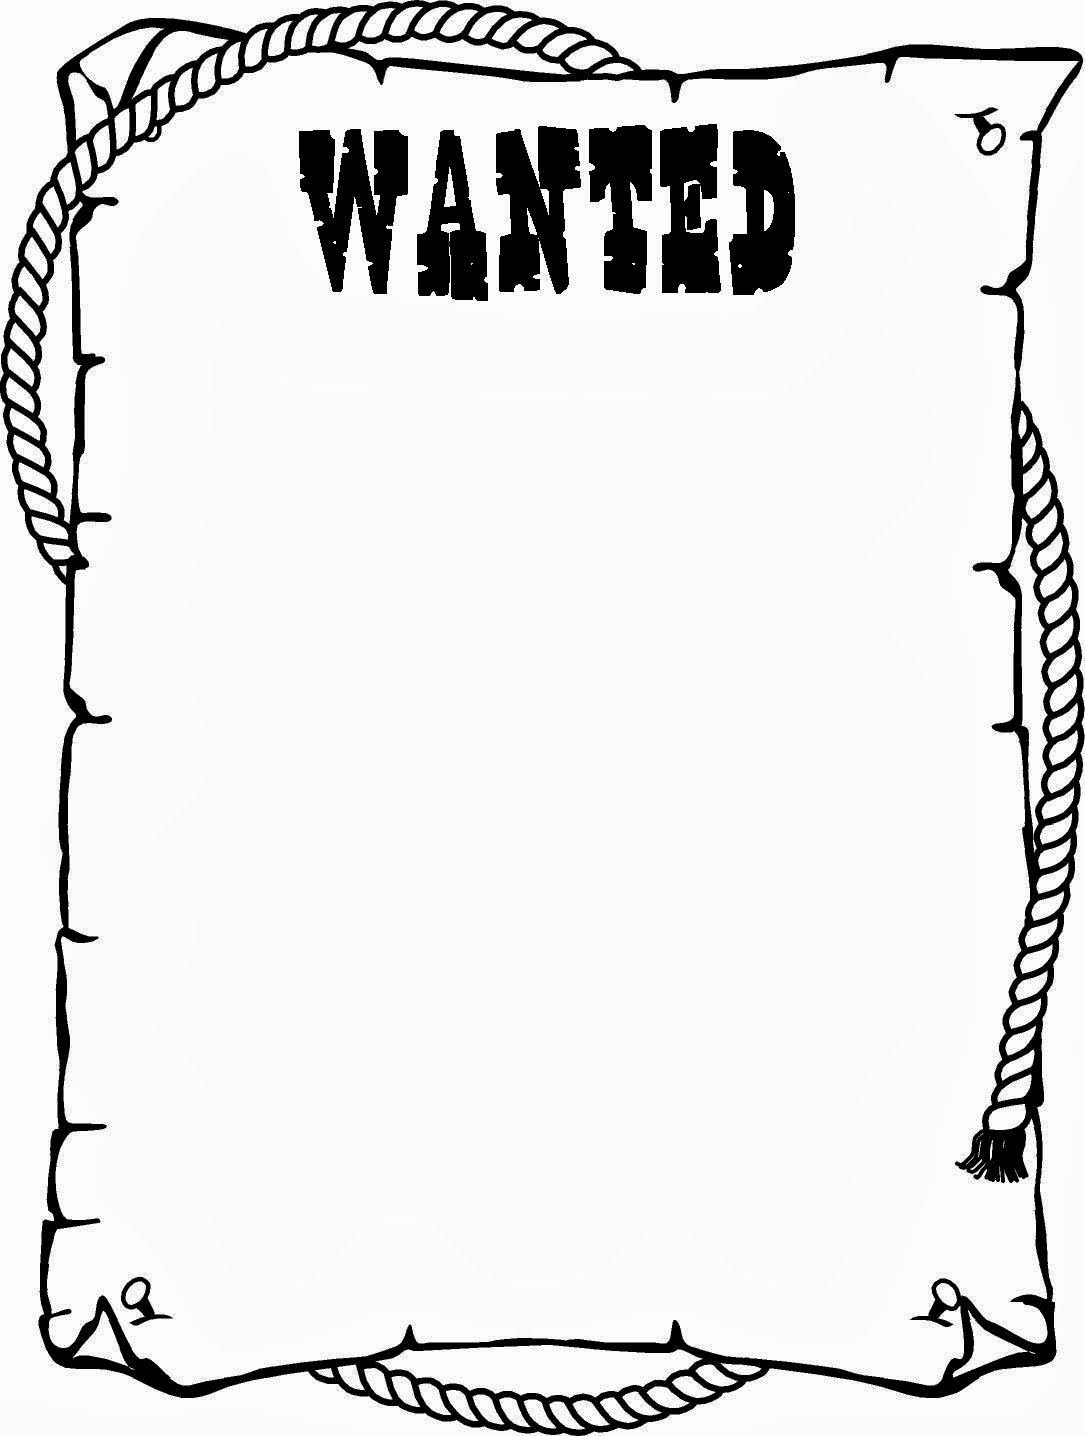 Wanted Poster Template Free Printable Awesome Wanted Poster Template for Kids Ctzobx5z